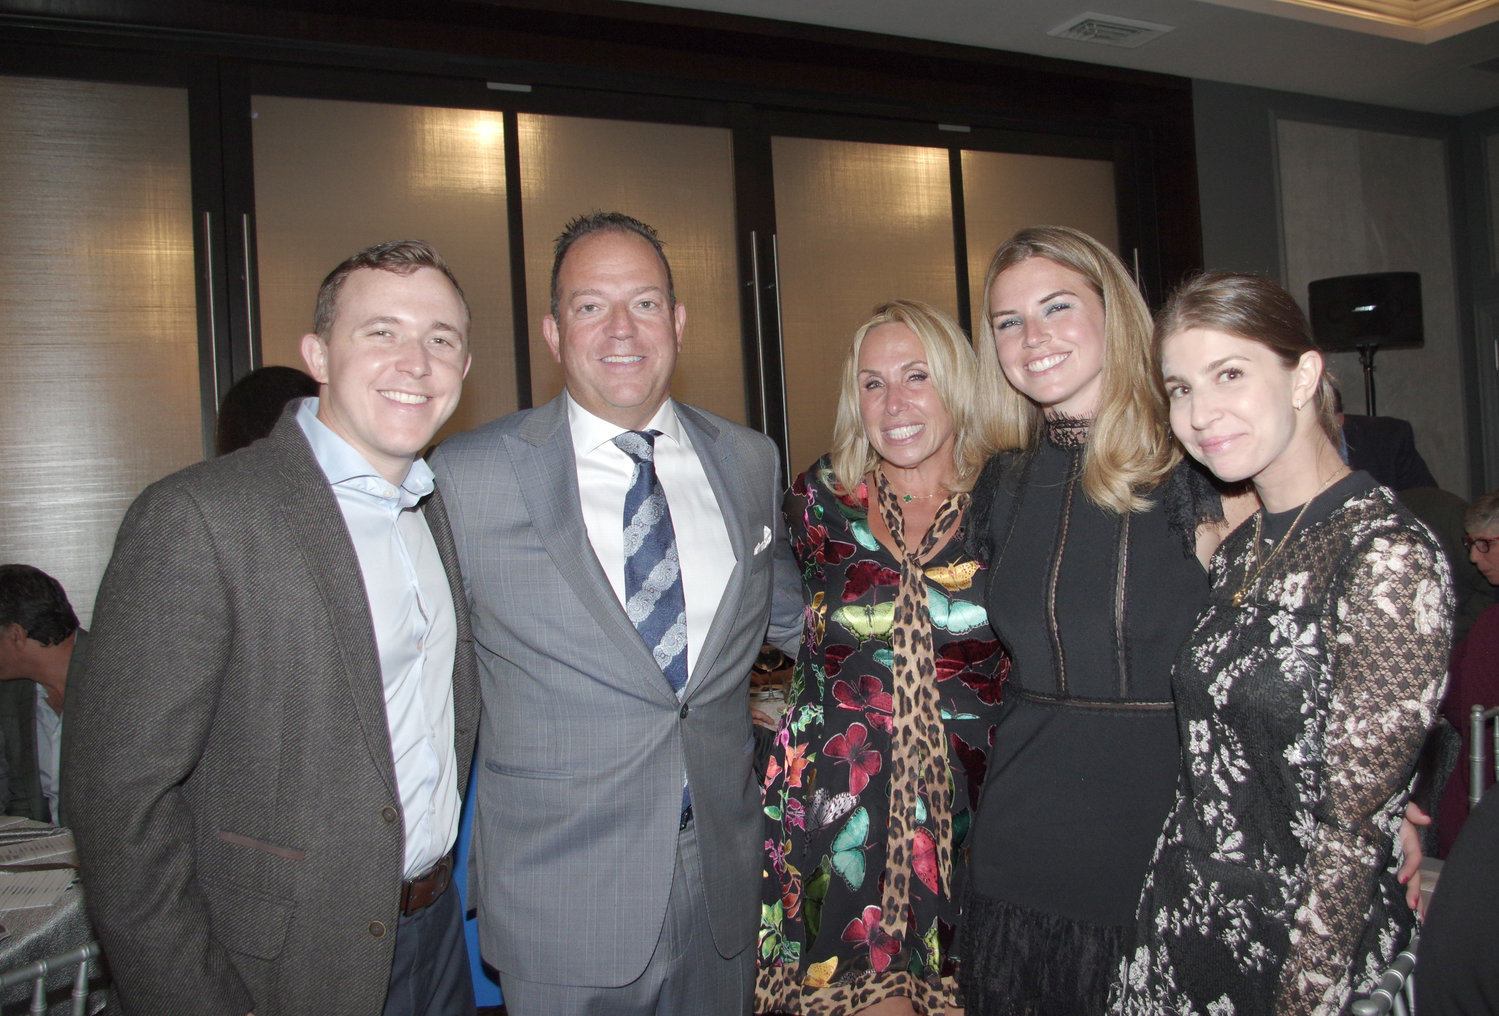 The United Jewish Appeal-Federation of New York honored nine people at its first-ever South Shore dinner, including, Dr Ron and Jackie Kaminer, who were with son Josh Kaminer, far left, daughter Erika Kaminer, second from right, and future daughter-in-law Cassie Scheiner.